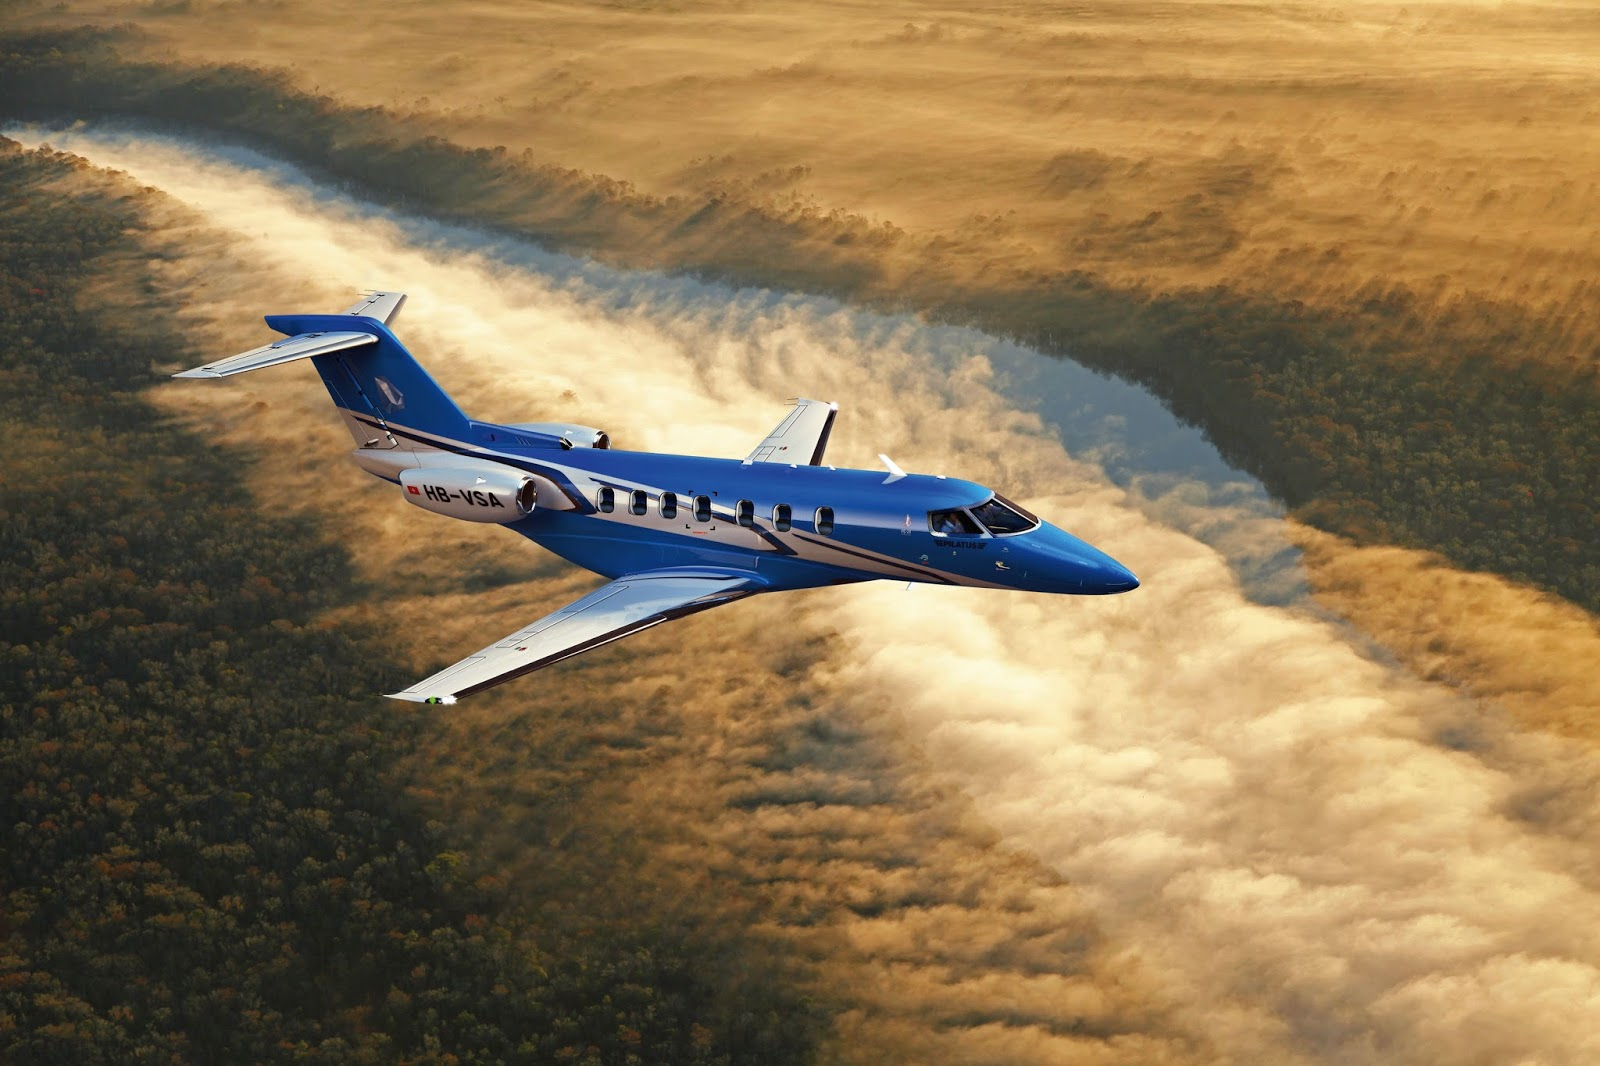 Pilatus PC-24 Business Jet Over Mexico Aircraft Wallpaper 3880